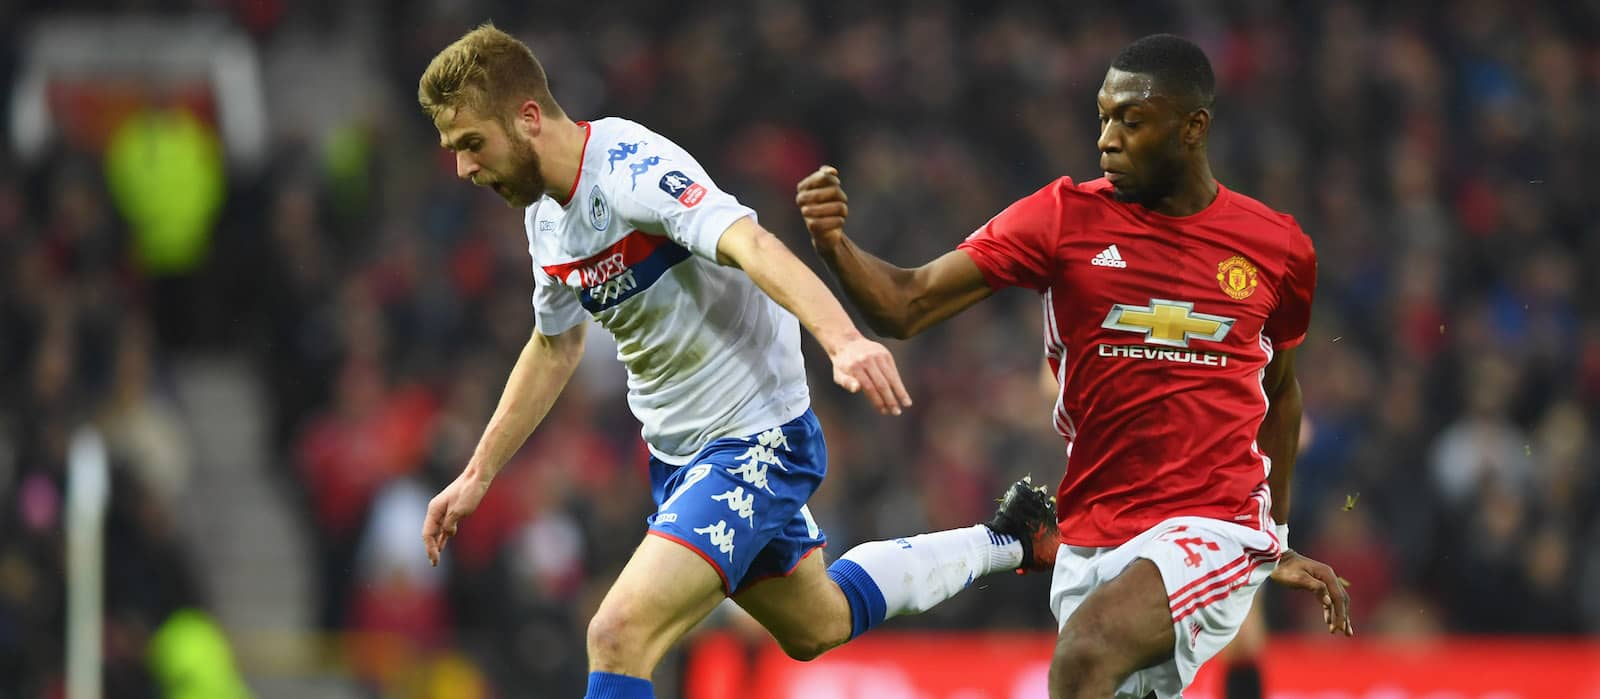 Manchester United's Timothy Fosu-Mensah to be sent on loan: report